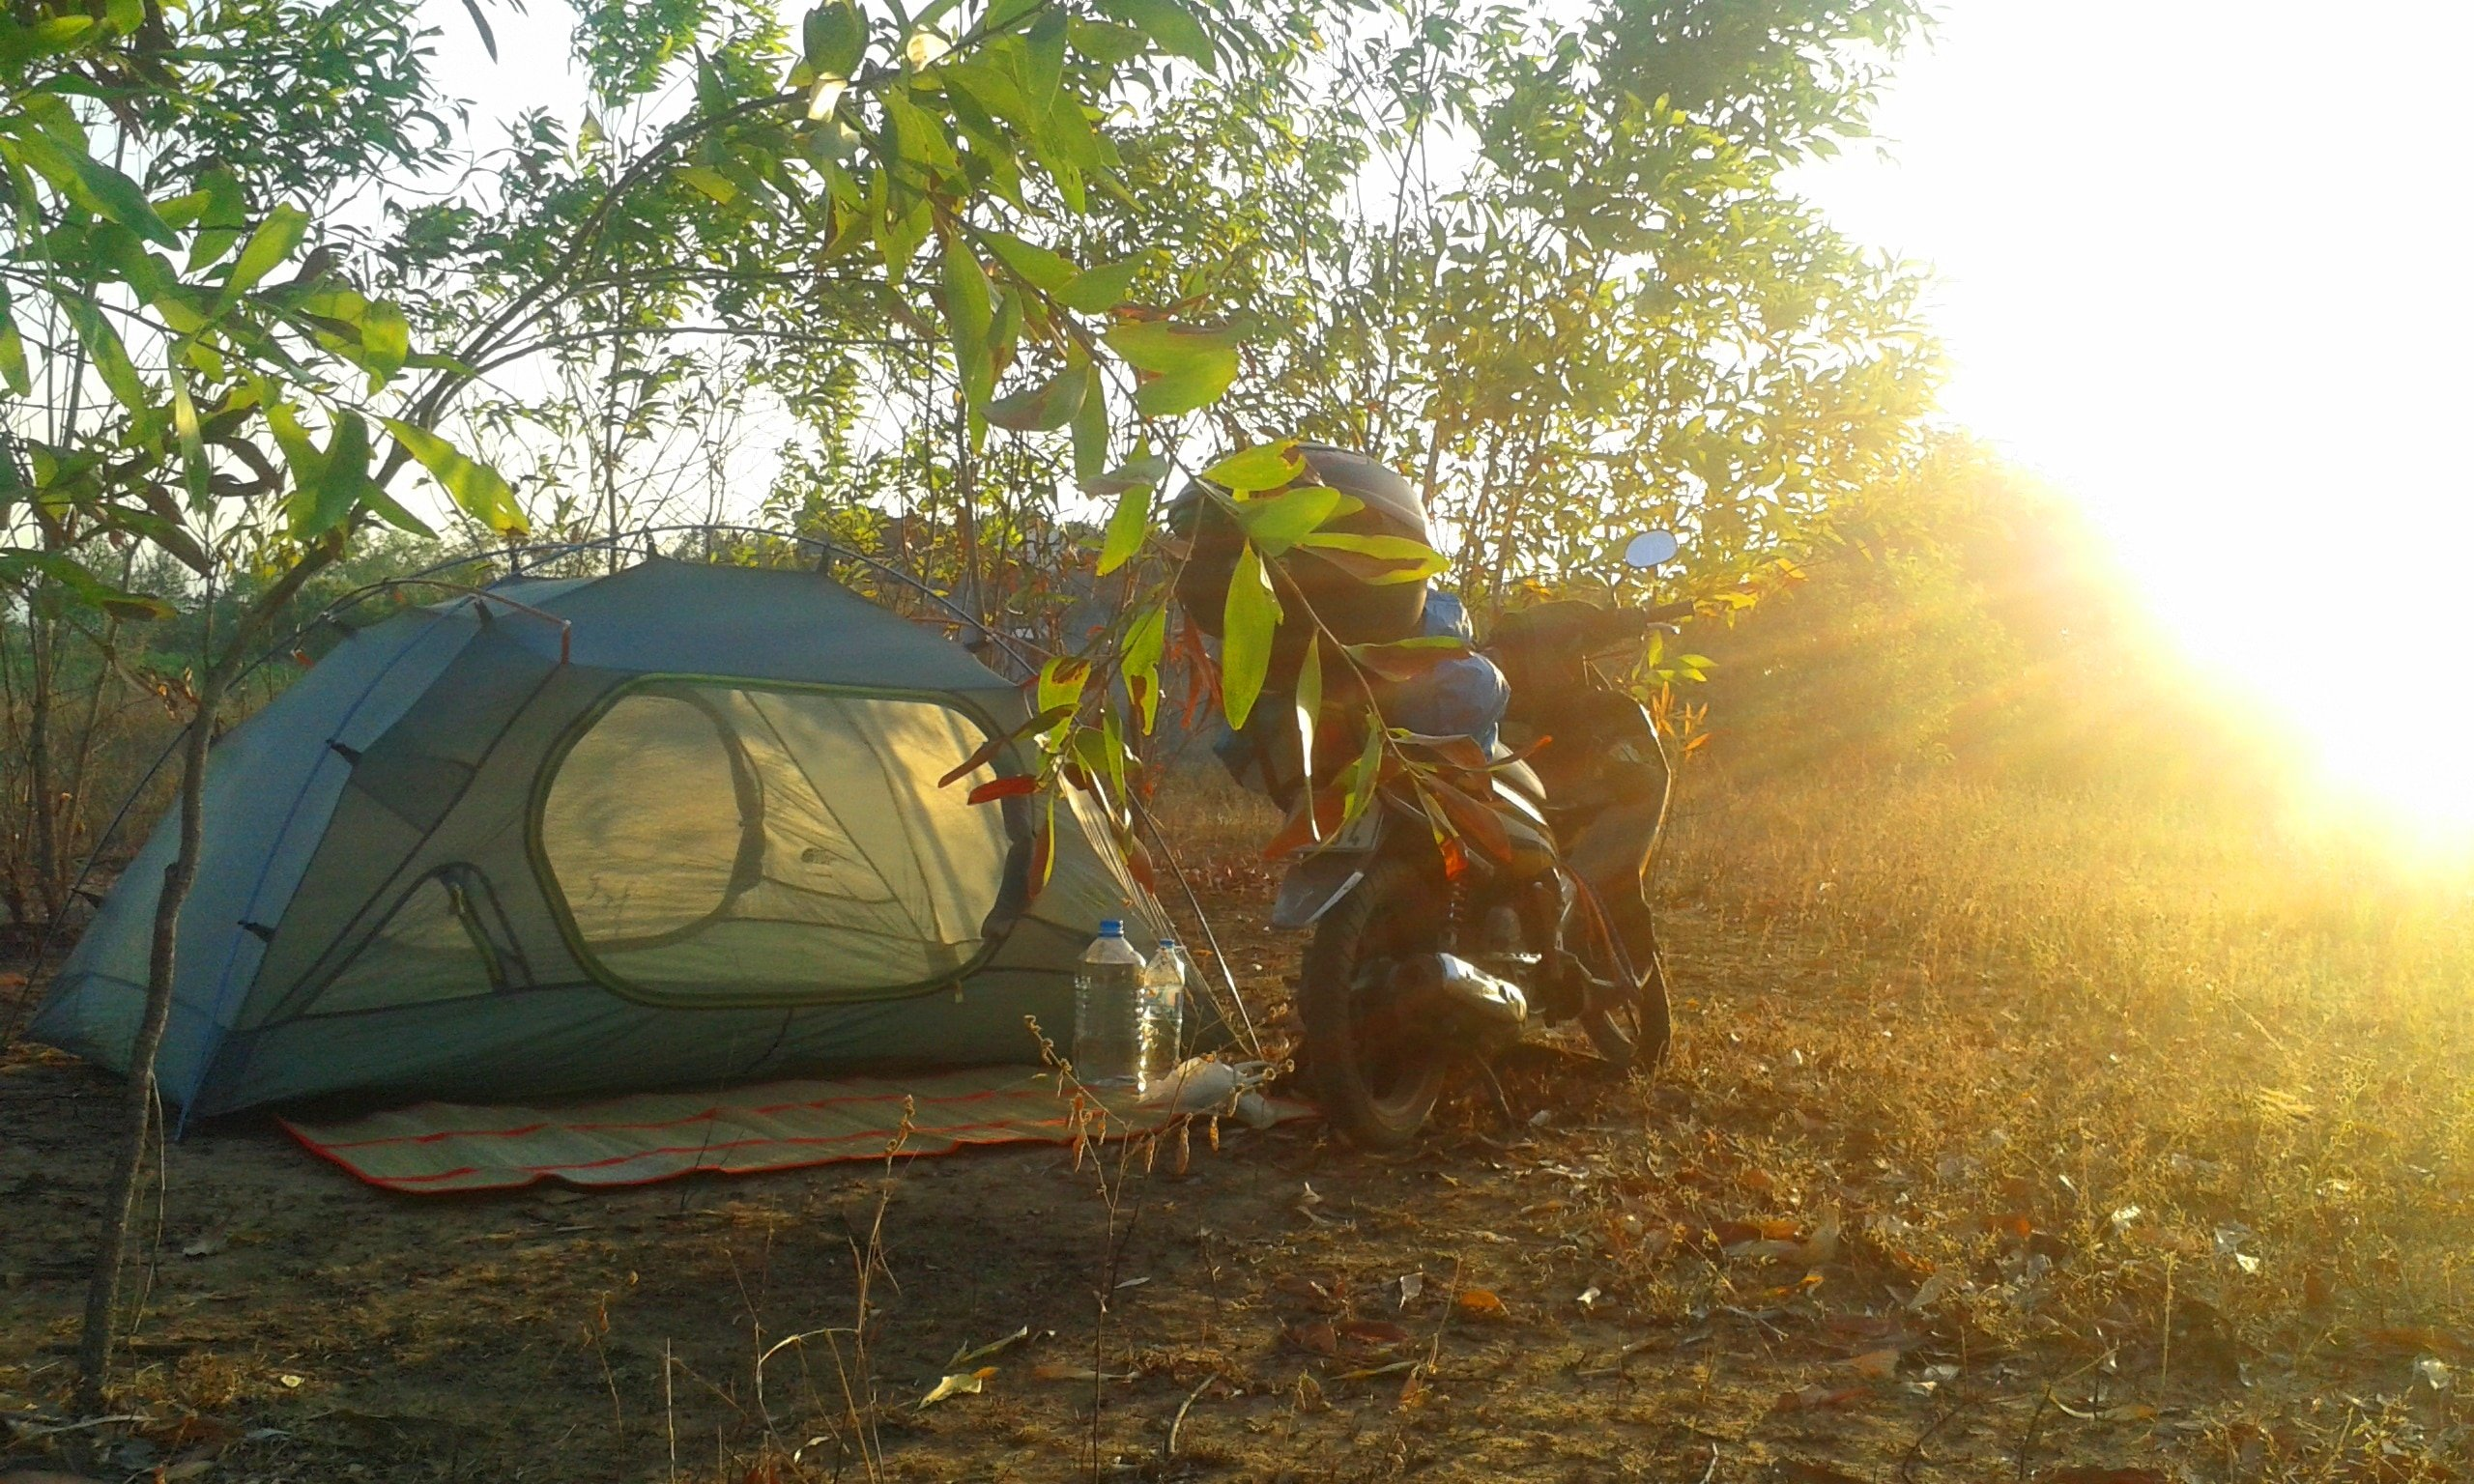 Camping near the Cai River, Ninh Thuan Province